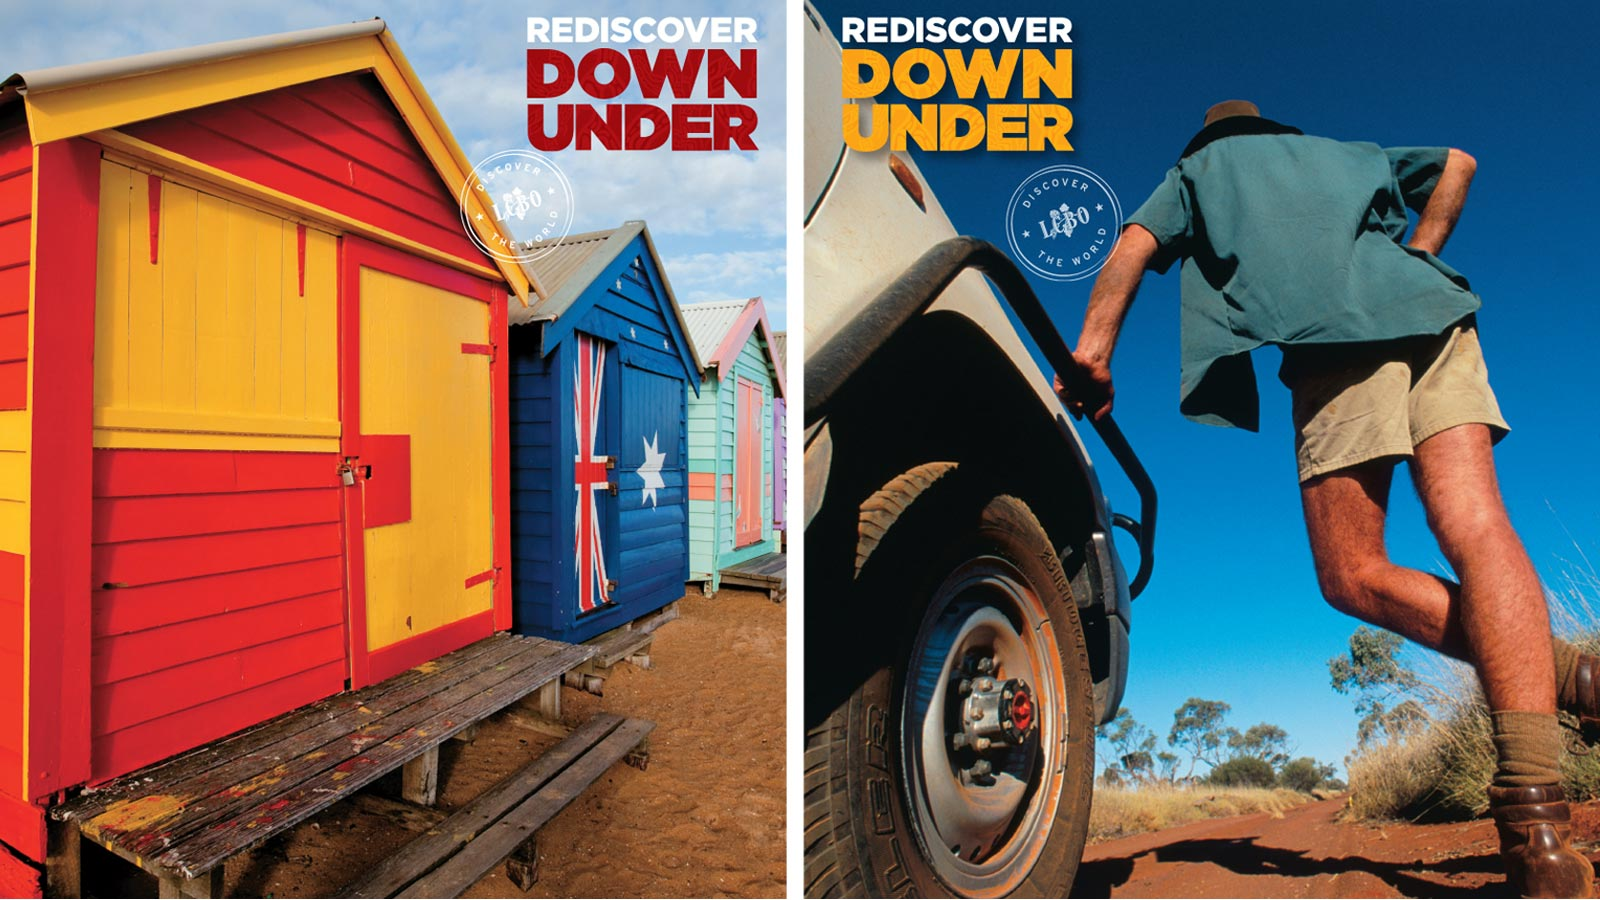 LCBO | Rediscover Down Under | Design, Retail